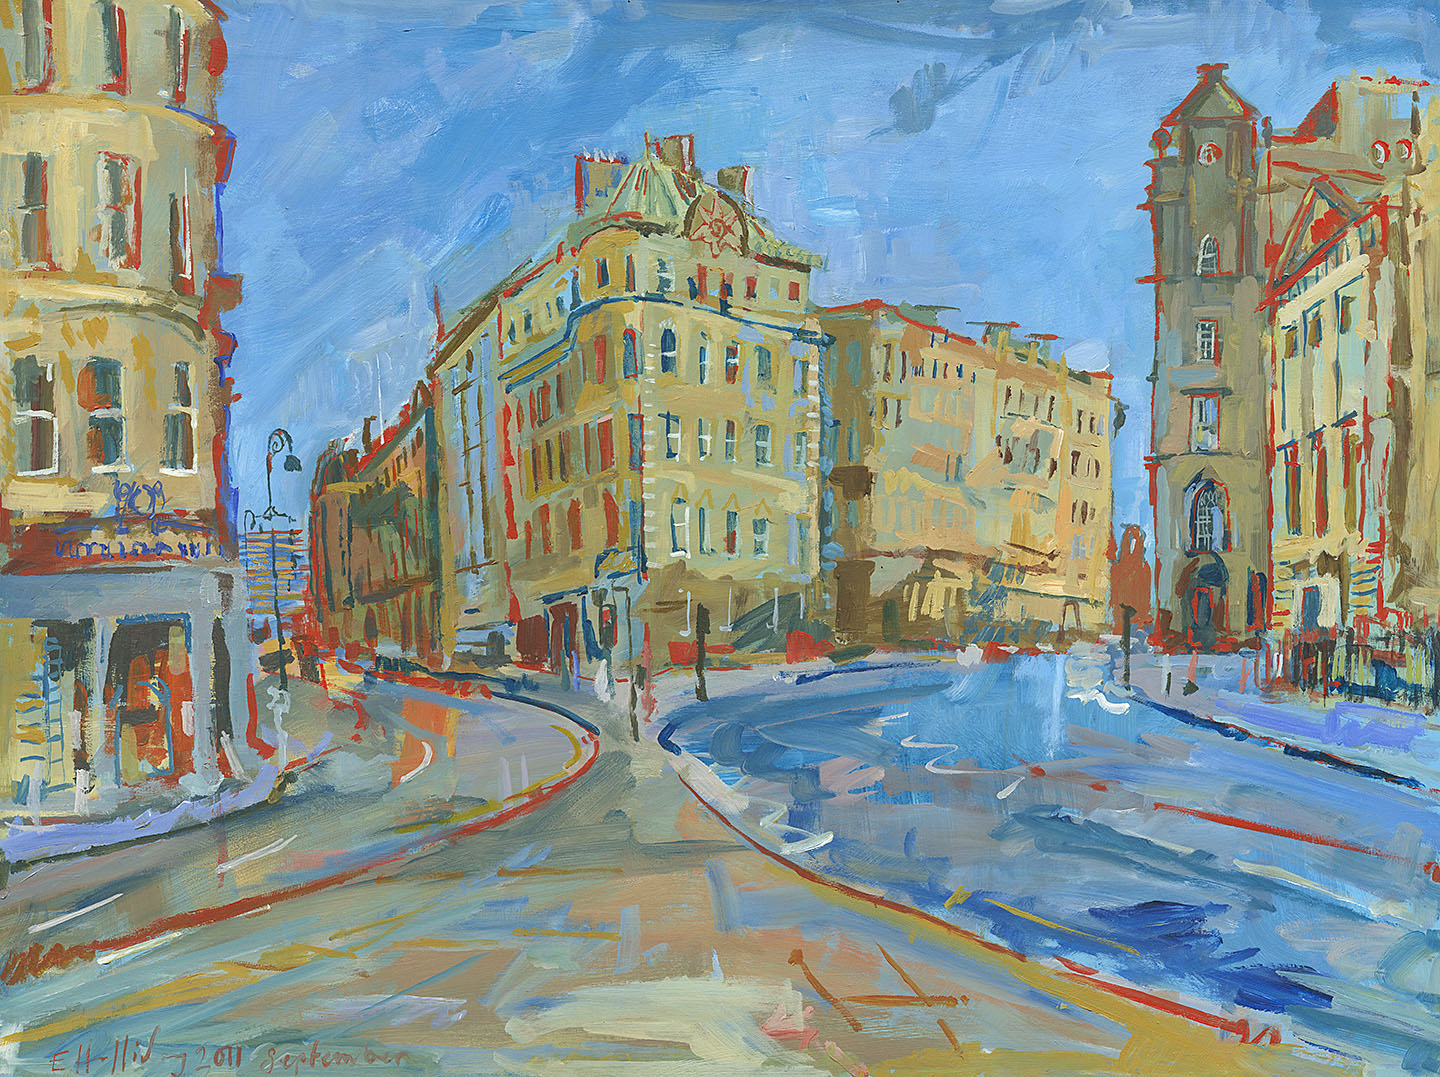 Holliday-Westgate-Road-Collingwood-St-painting-03